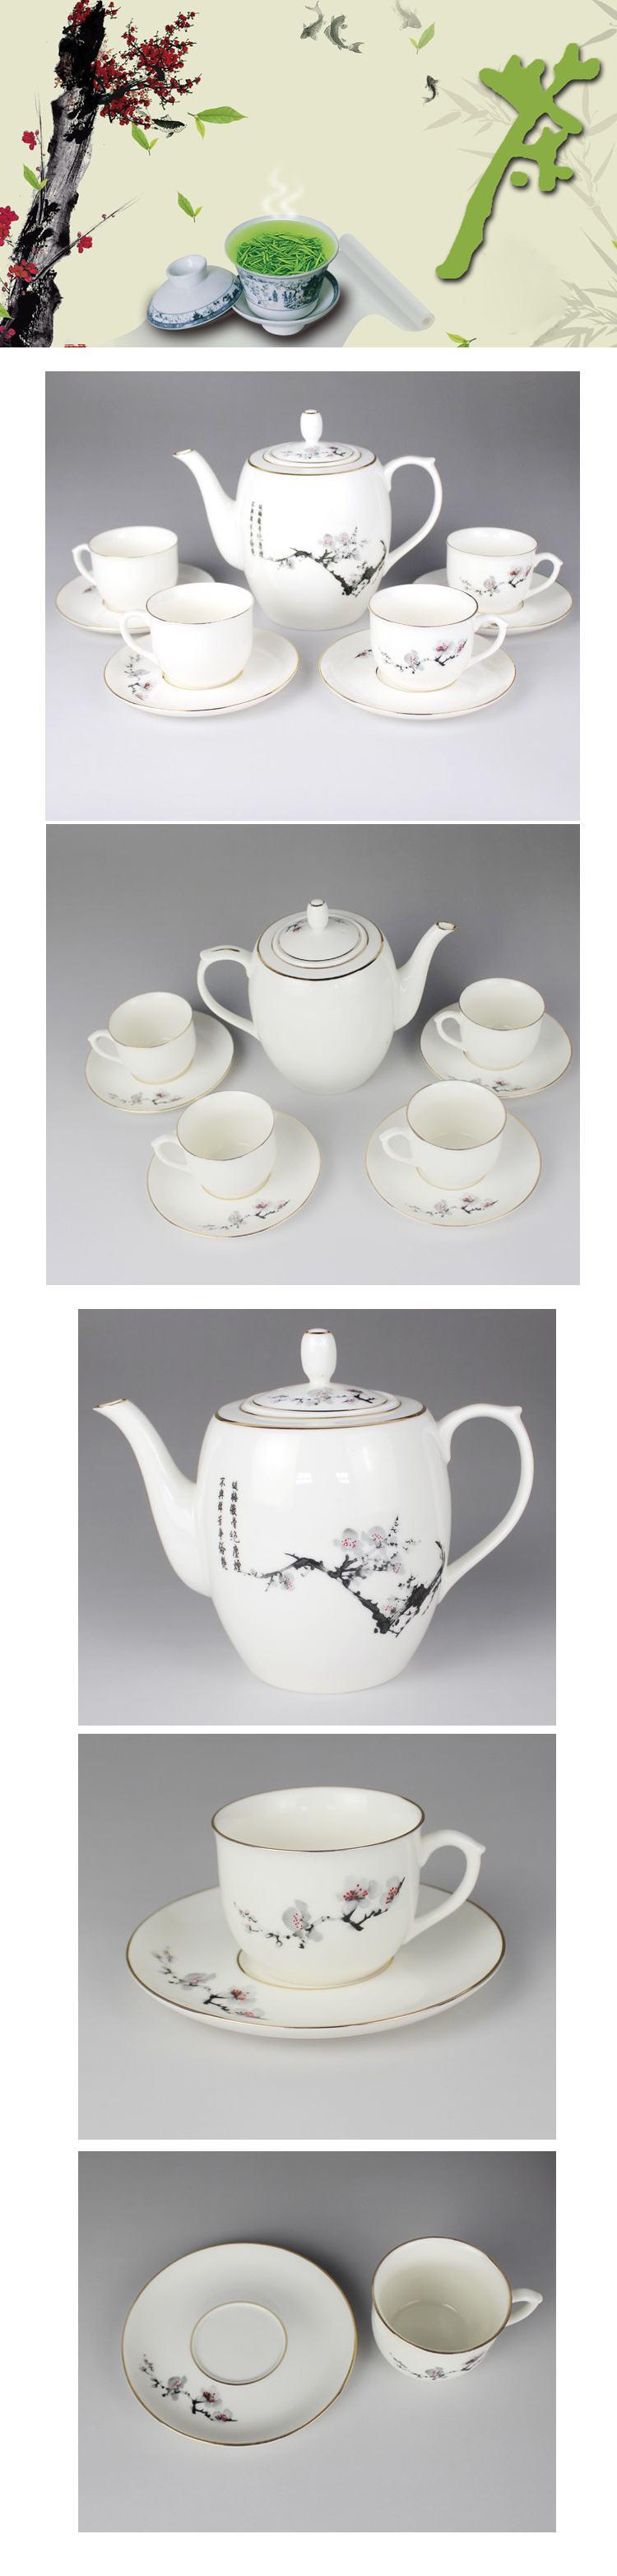 Tea Infusing Teapot with 4 Teacups Porcelain Tea Set